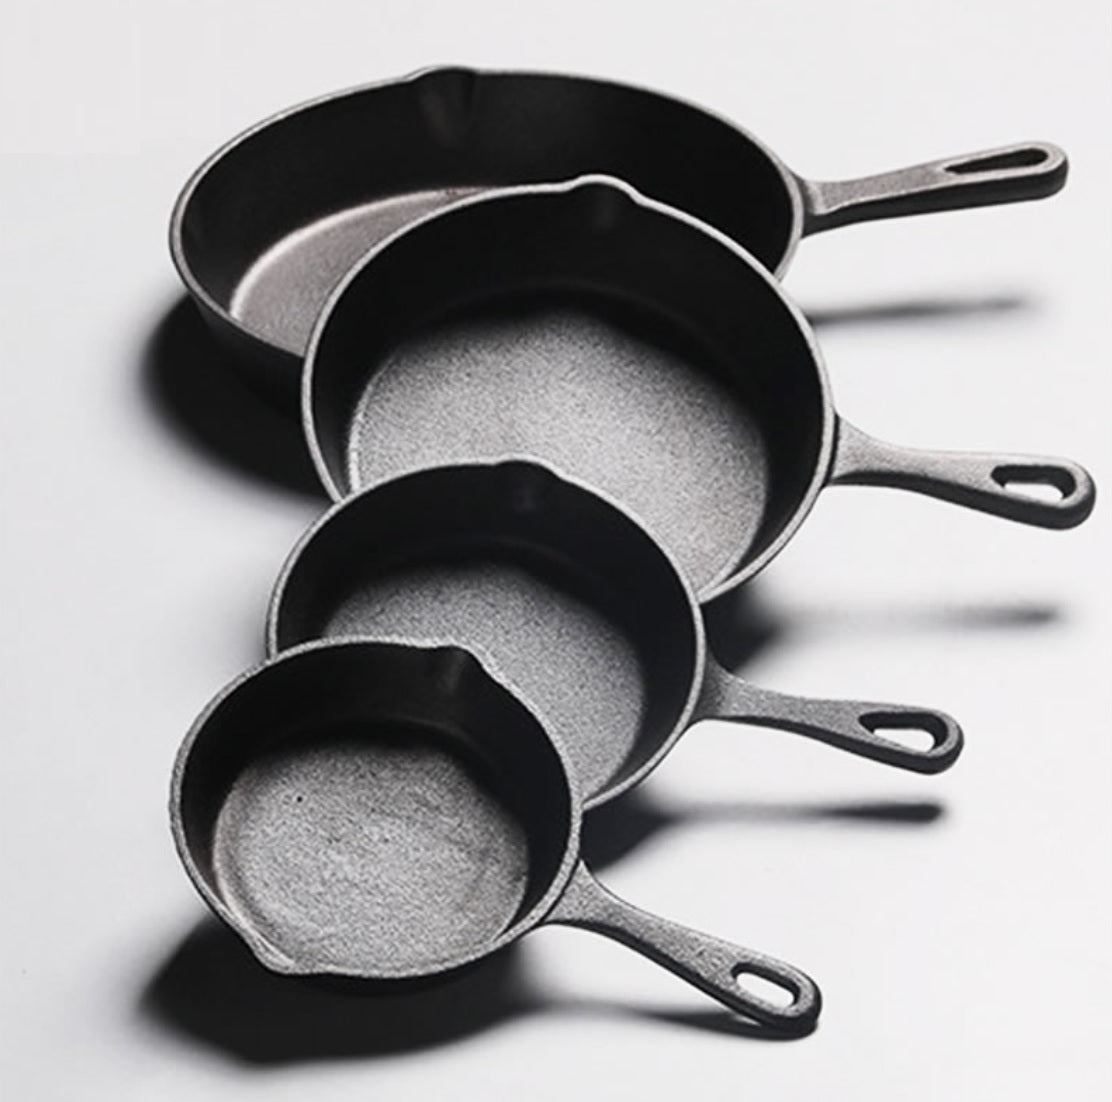 Cast Iron Frying Pans 14cm/16cm/20cm